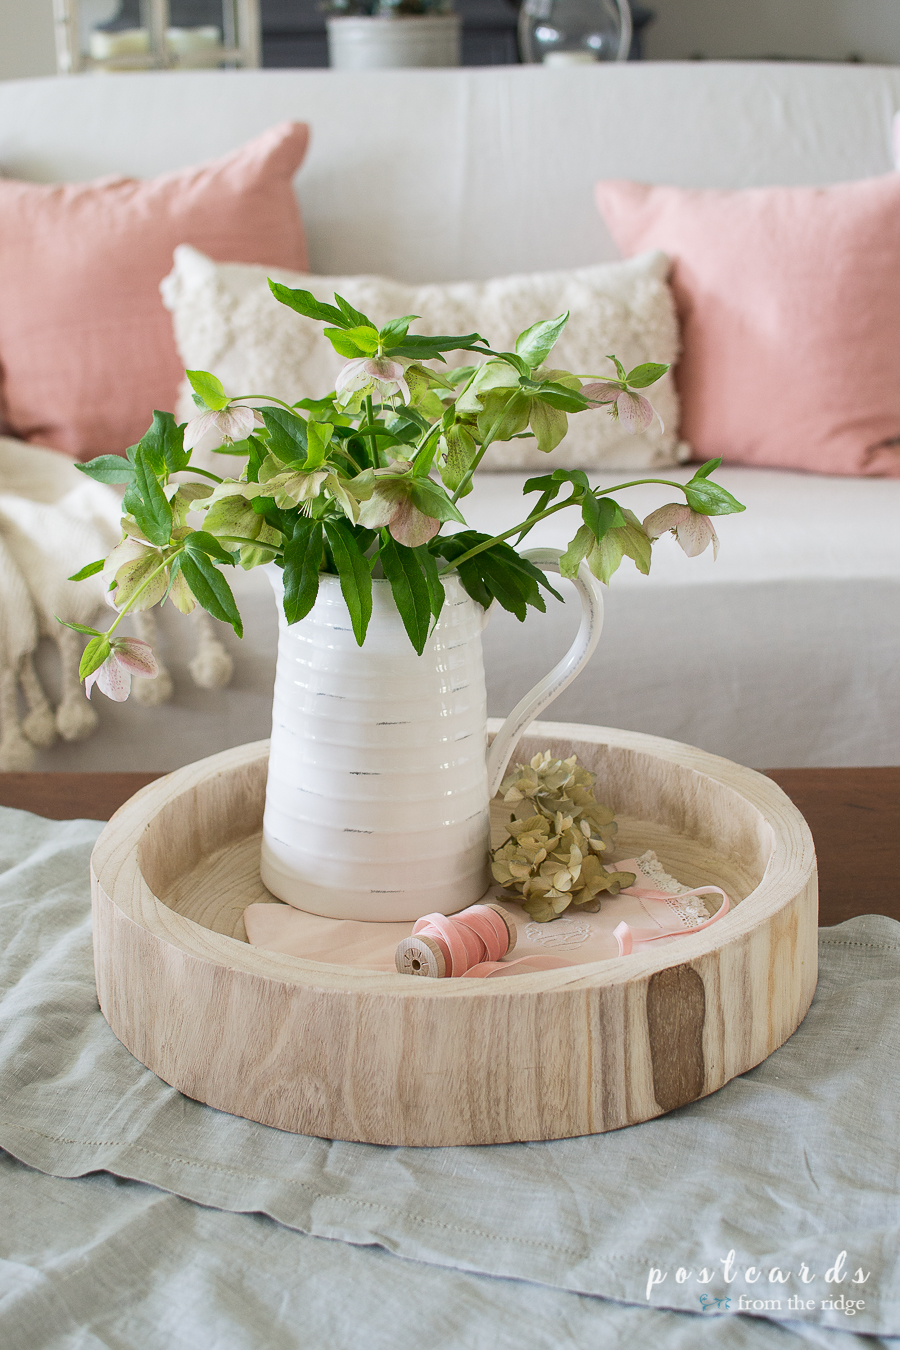 Lenten roses in a white pitcher on a round wood tray